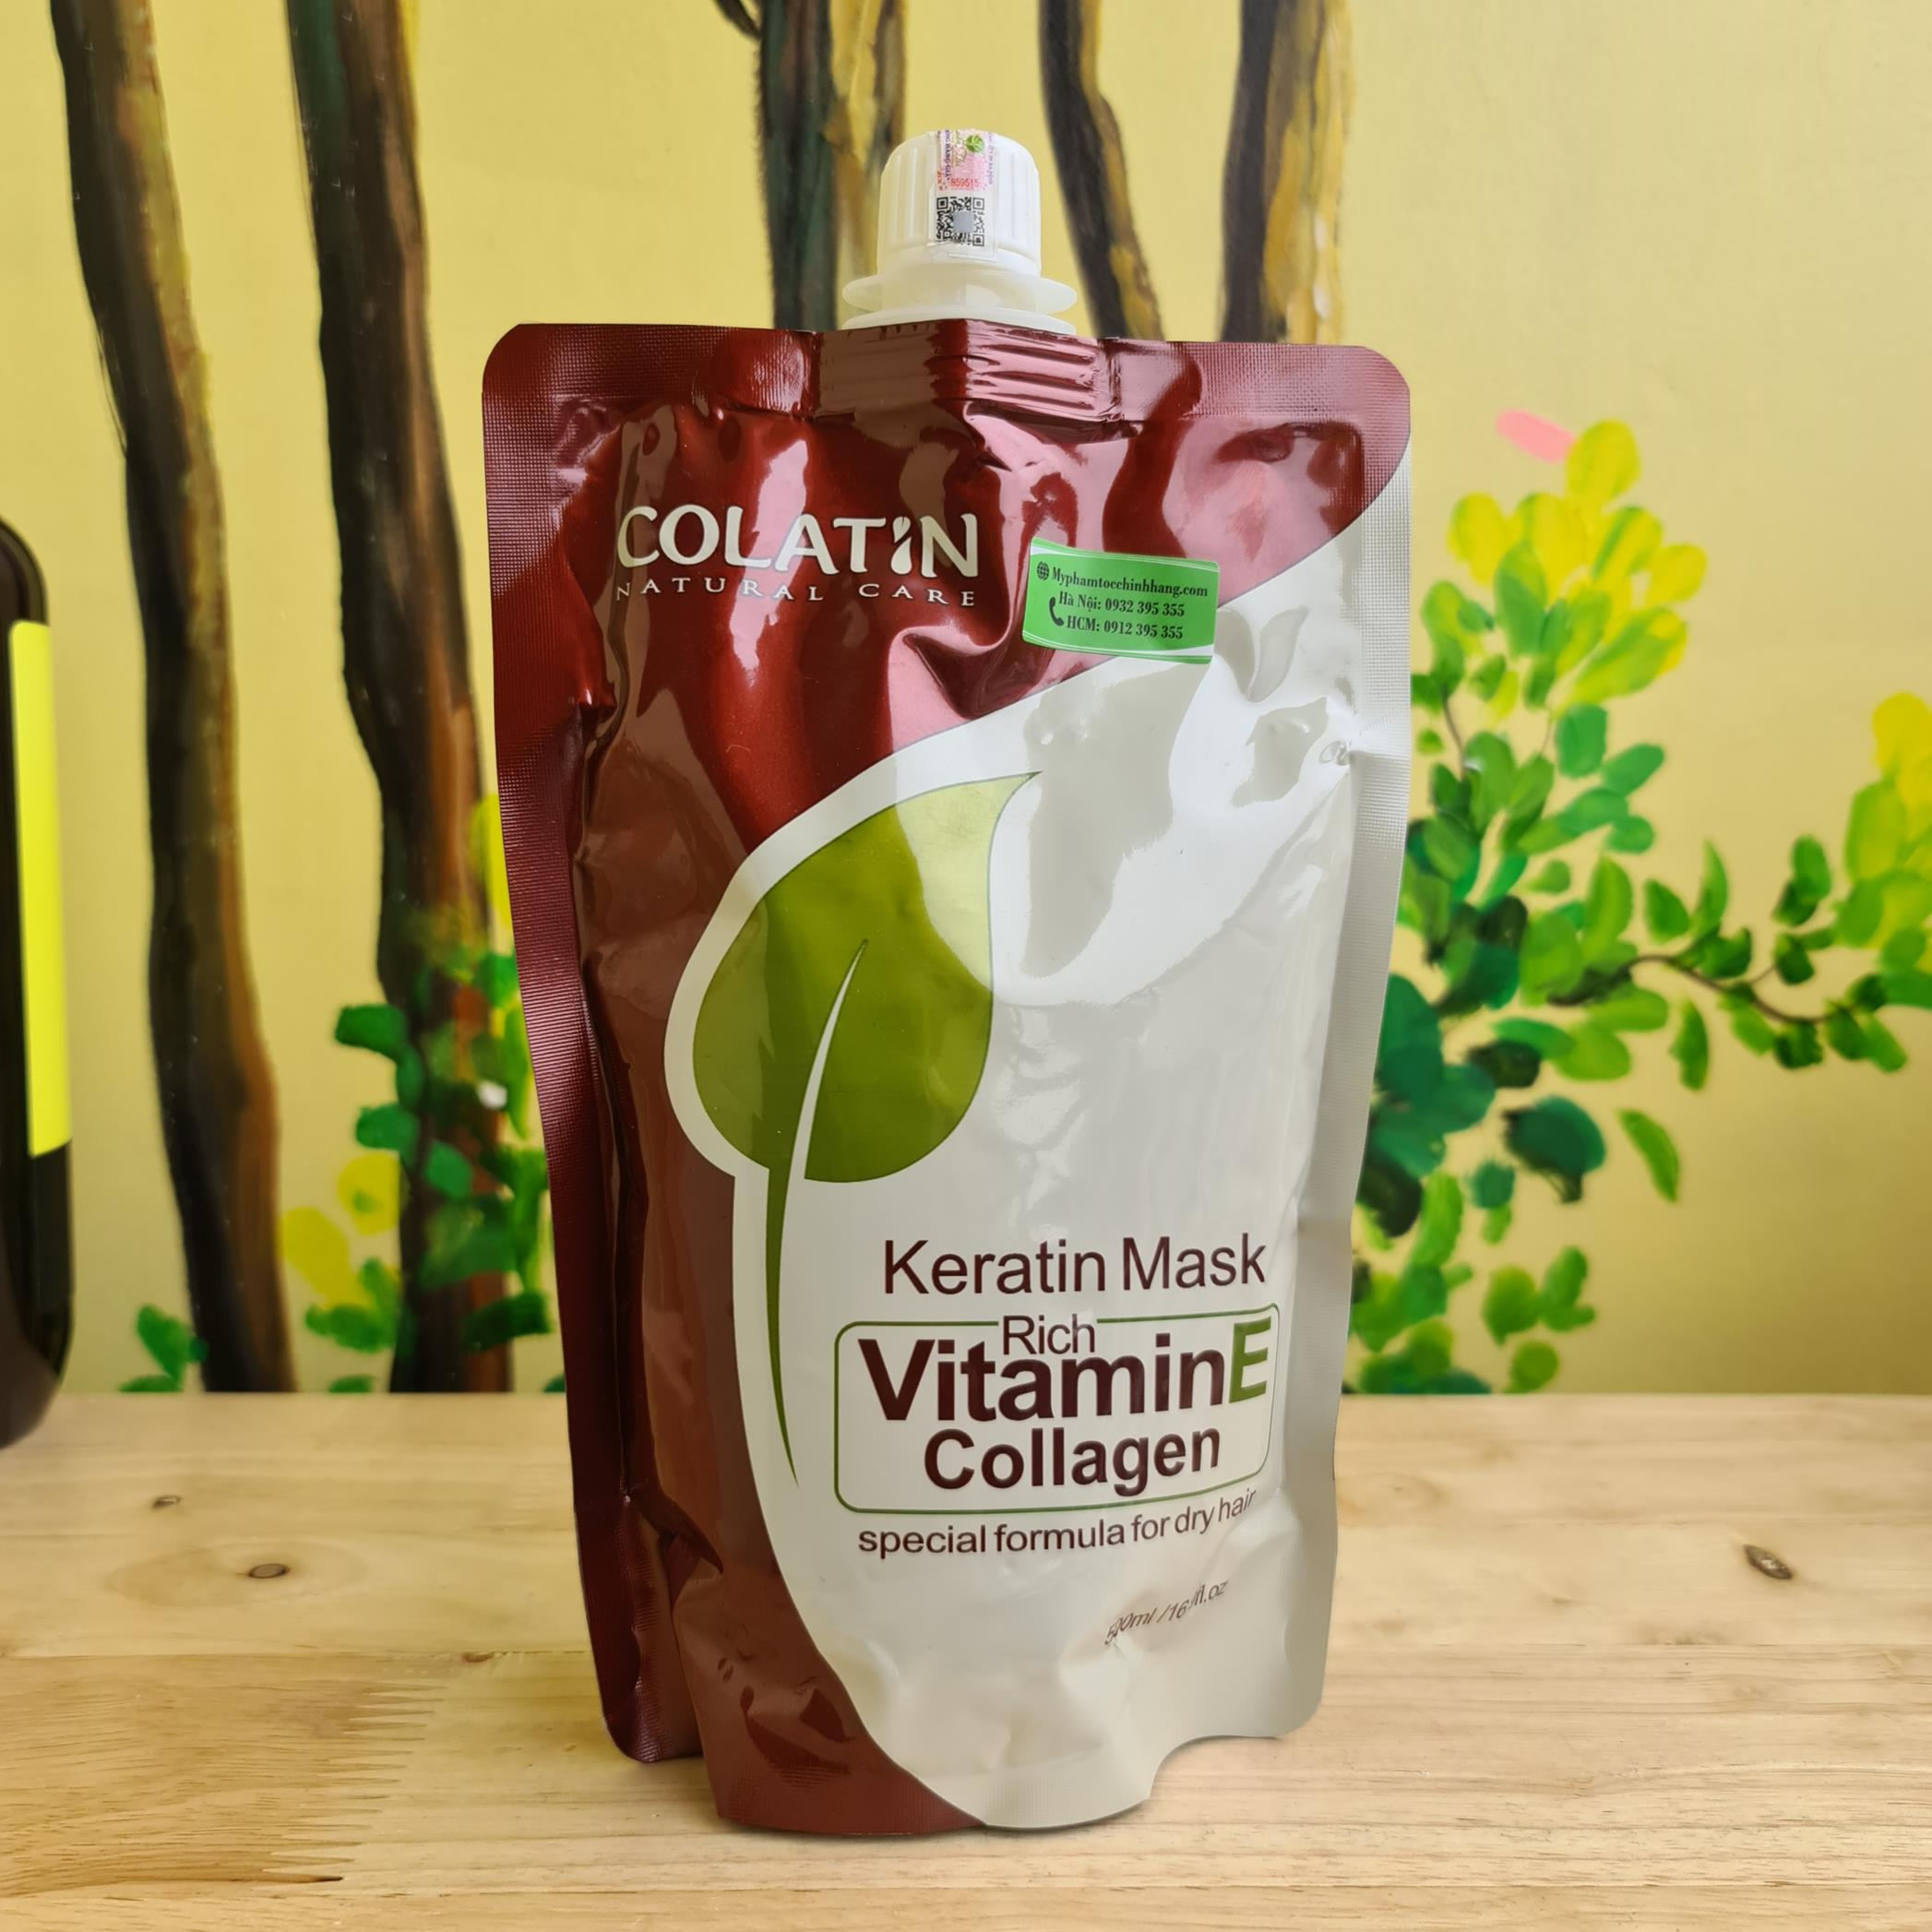 HẤP TÚI COLATIN VITAMIN E COLLAGEN MASK 500ML